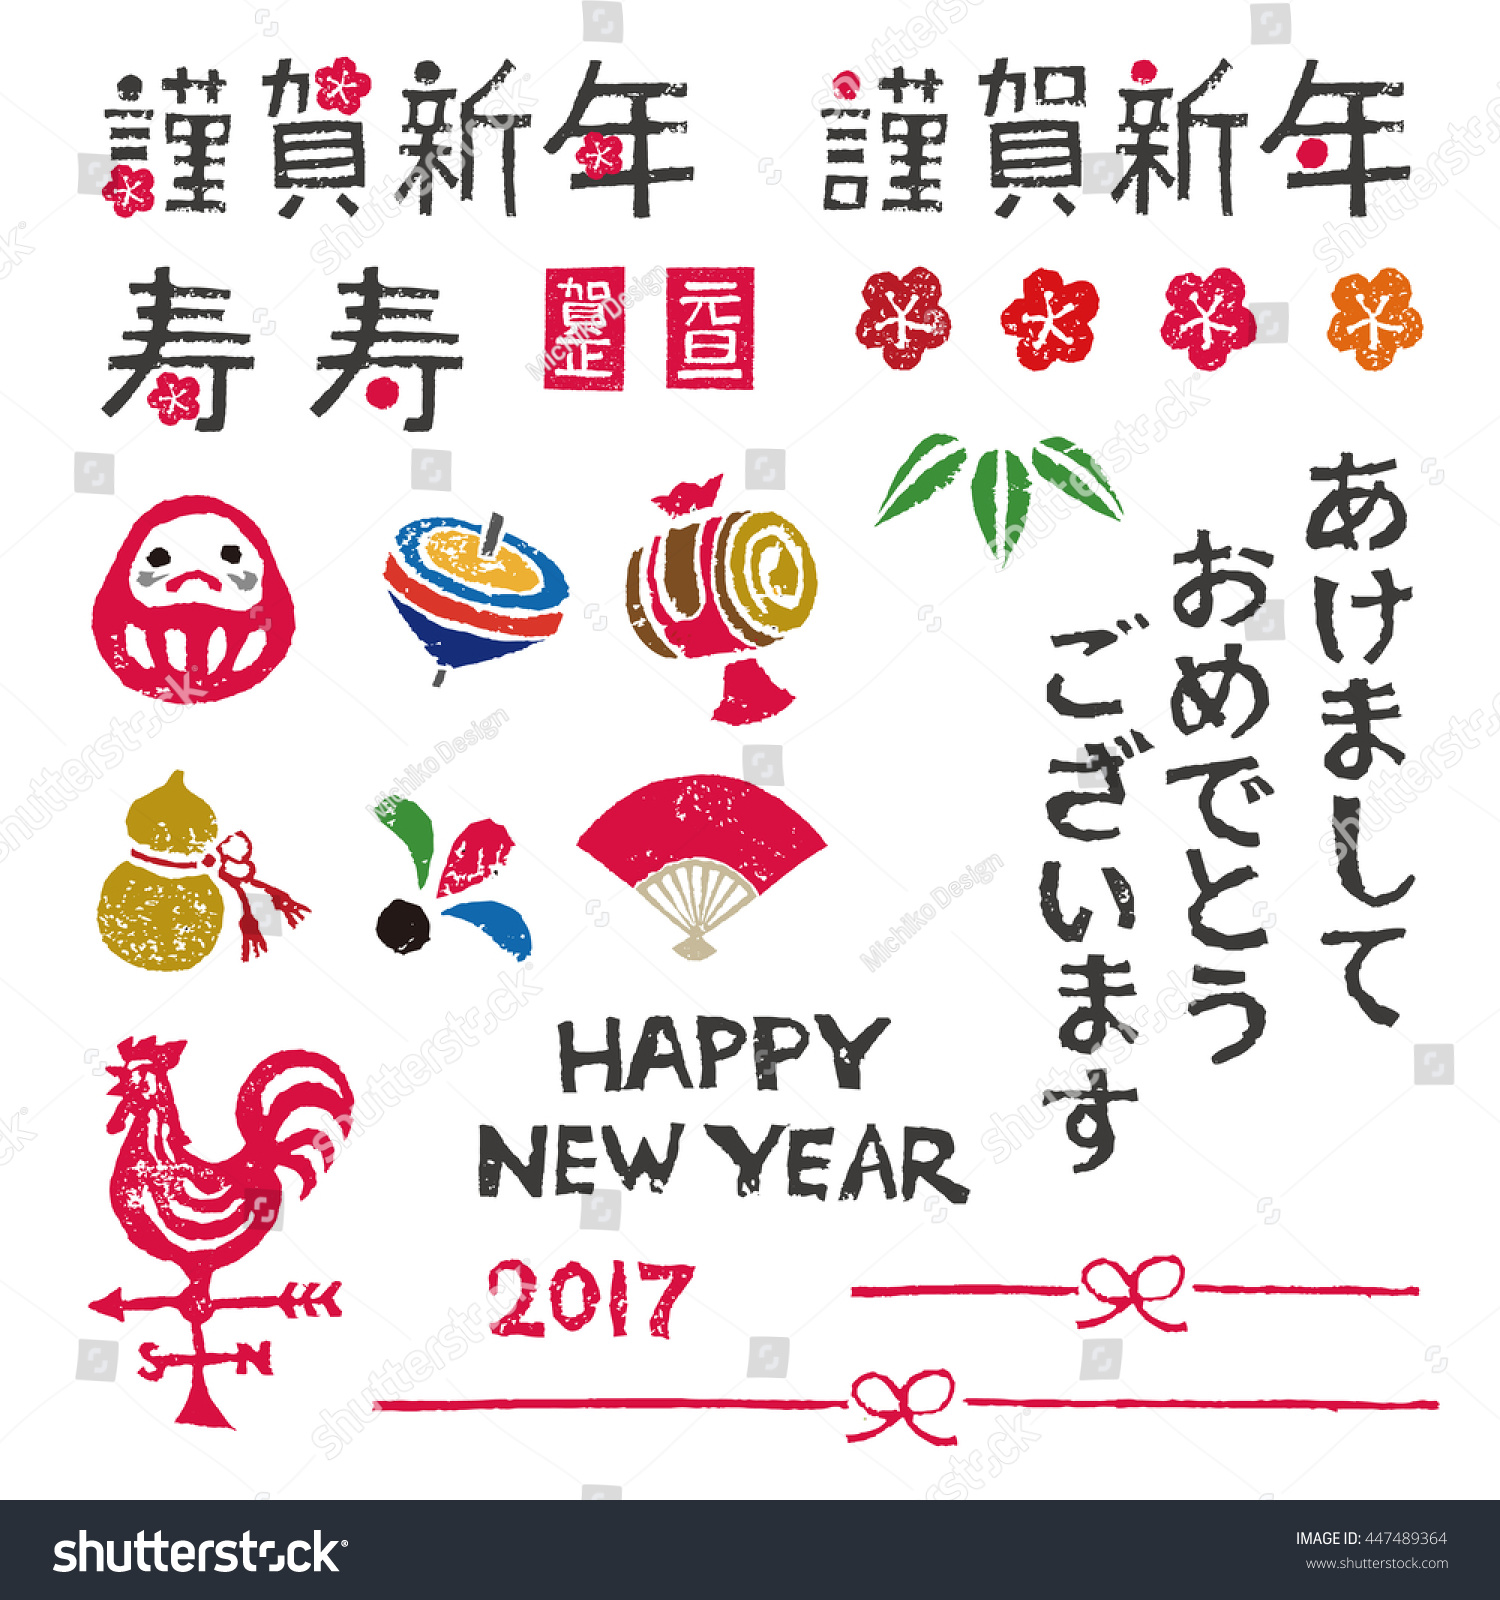 New Year Card Elements Greeting Words Stock Vector 447489364